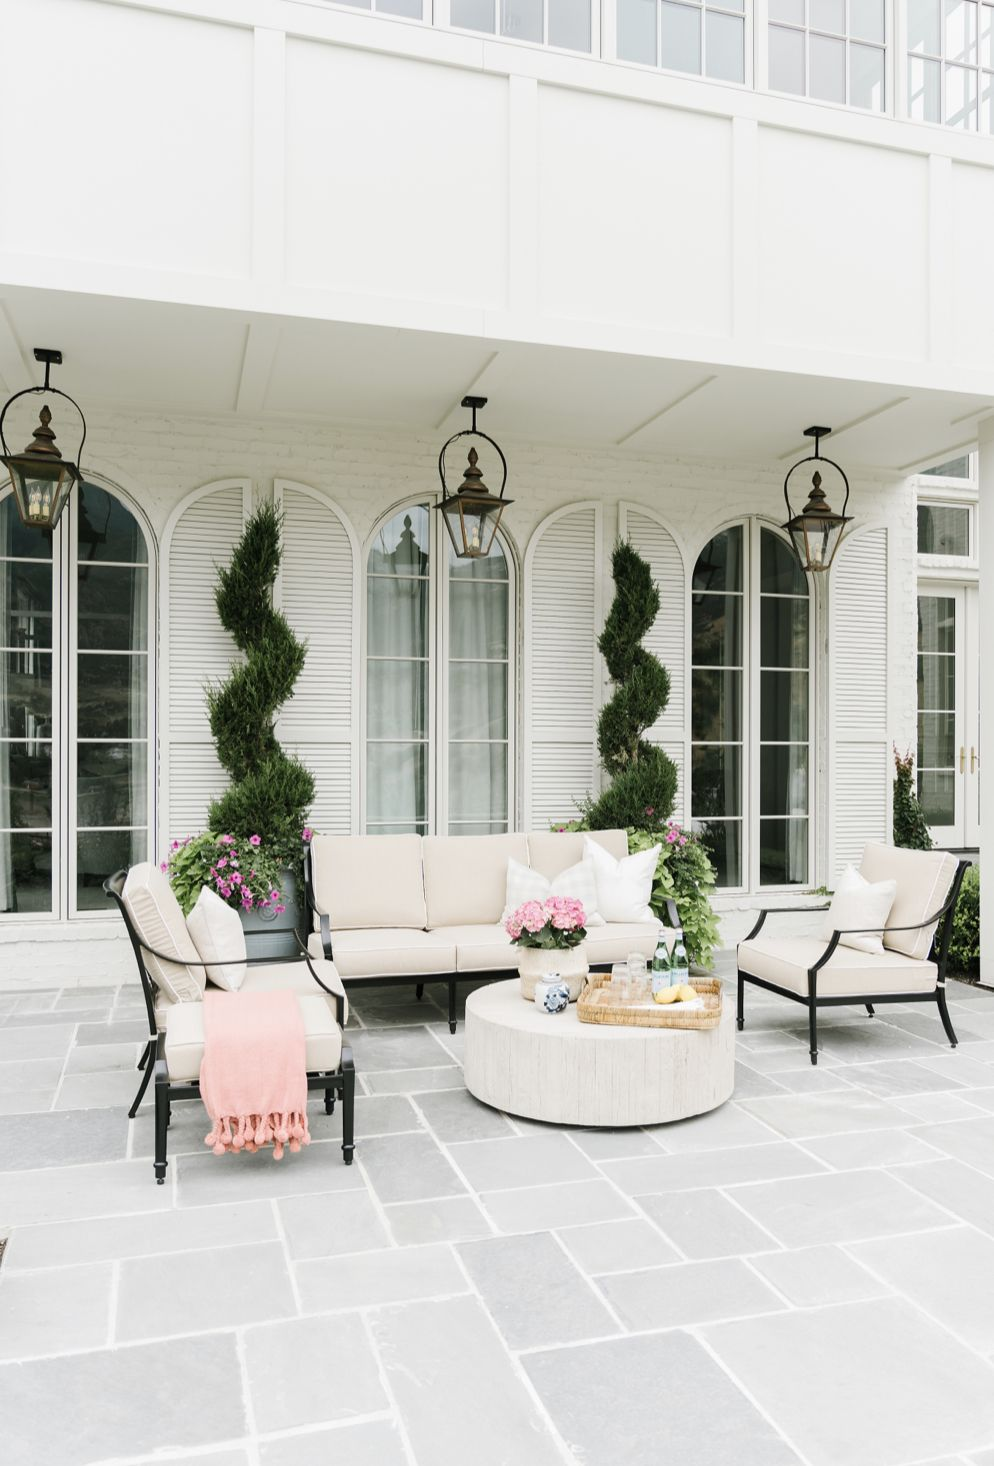 Our Backyard Patio Reveal... - Rach Parcell